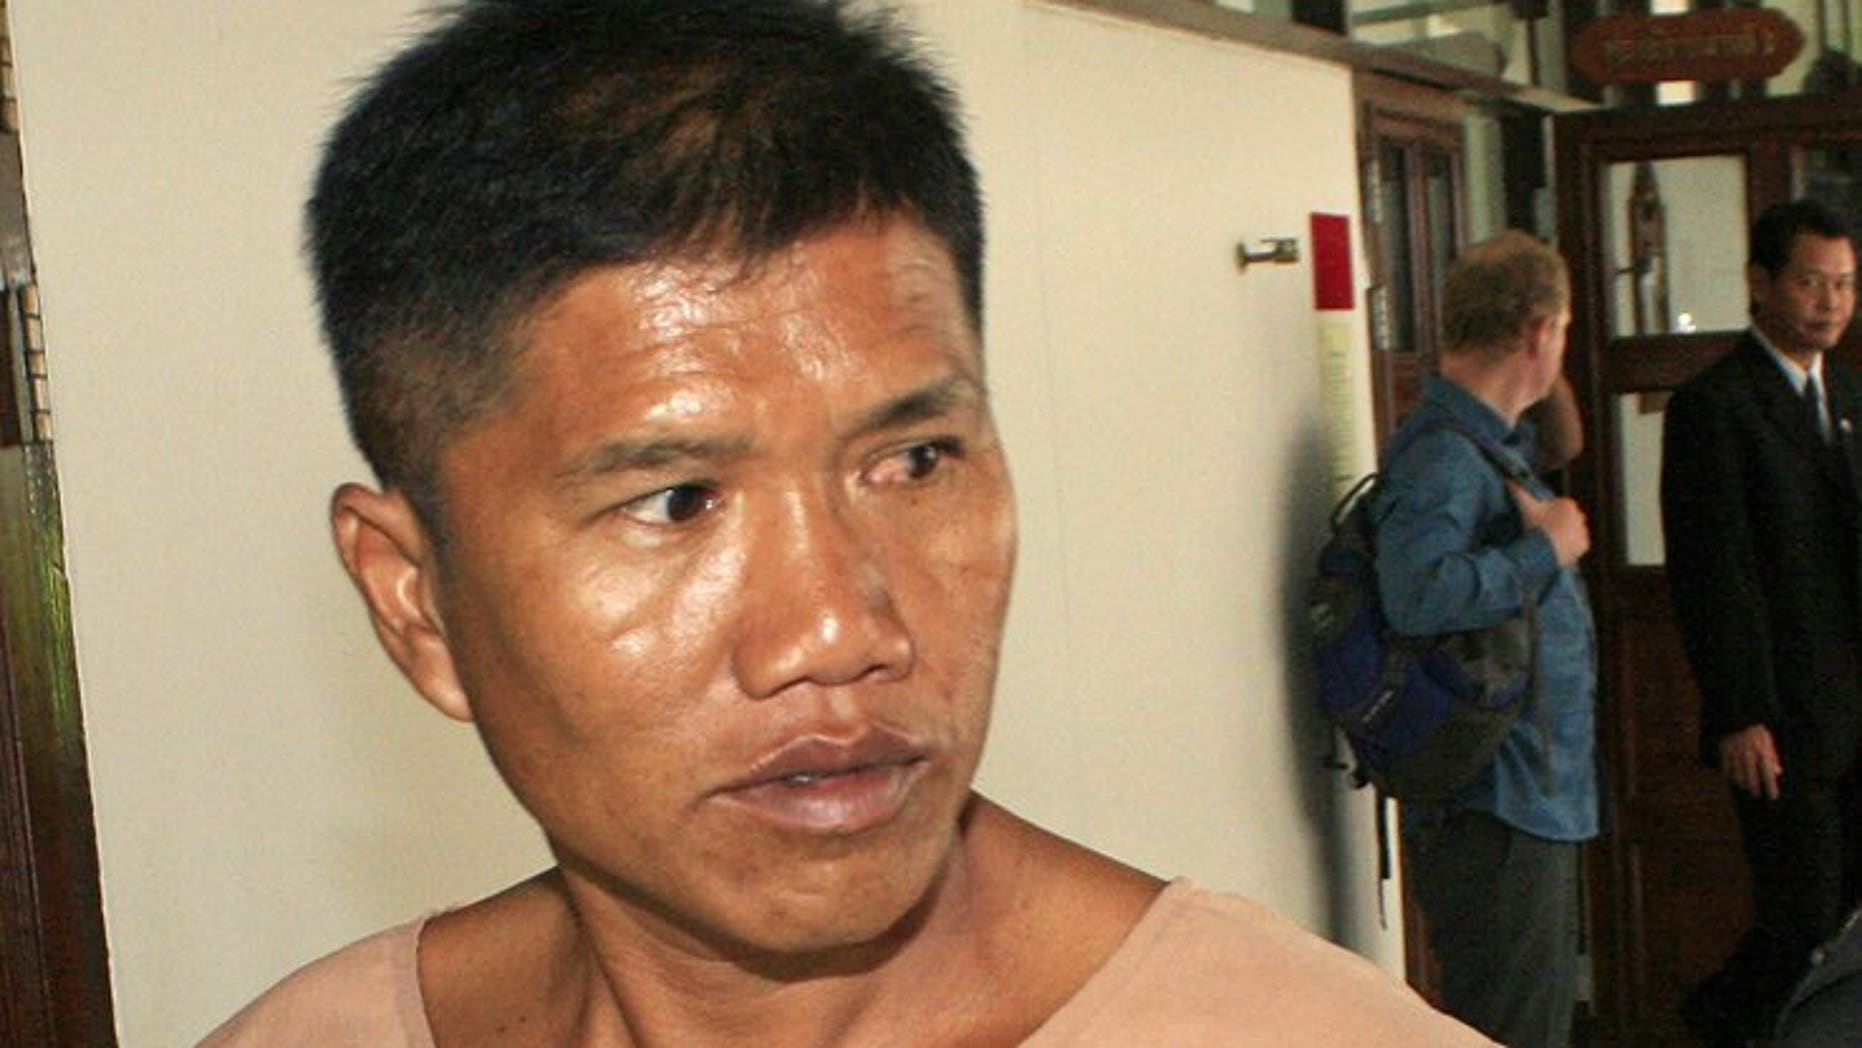 Former policeman Uthai Dechawiwat appears at the Provincial court in Chiang Mai province on August 20, 2013. The court sentenced Dechawiwat to nearly four decades in jail for shooting dead a Canadian tourist in a scuffle in a sleepy northern resort town.